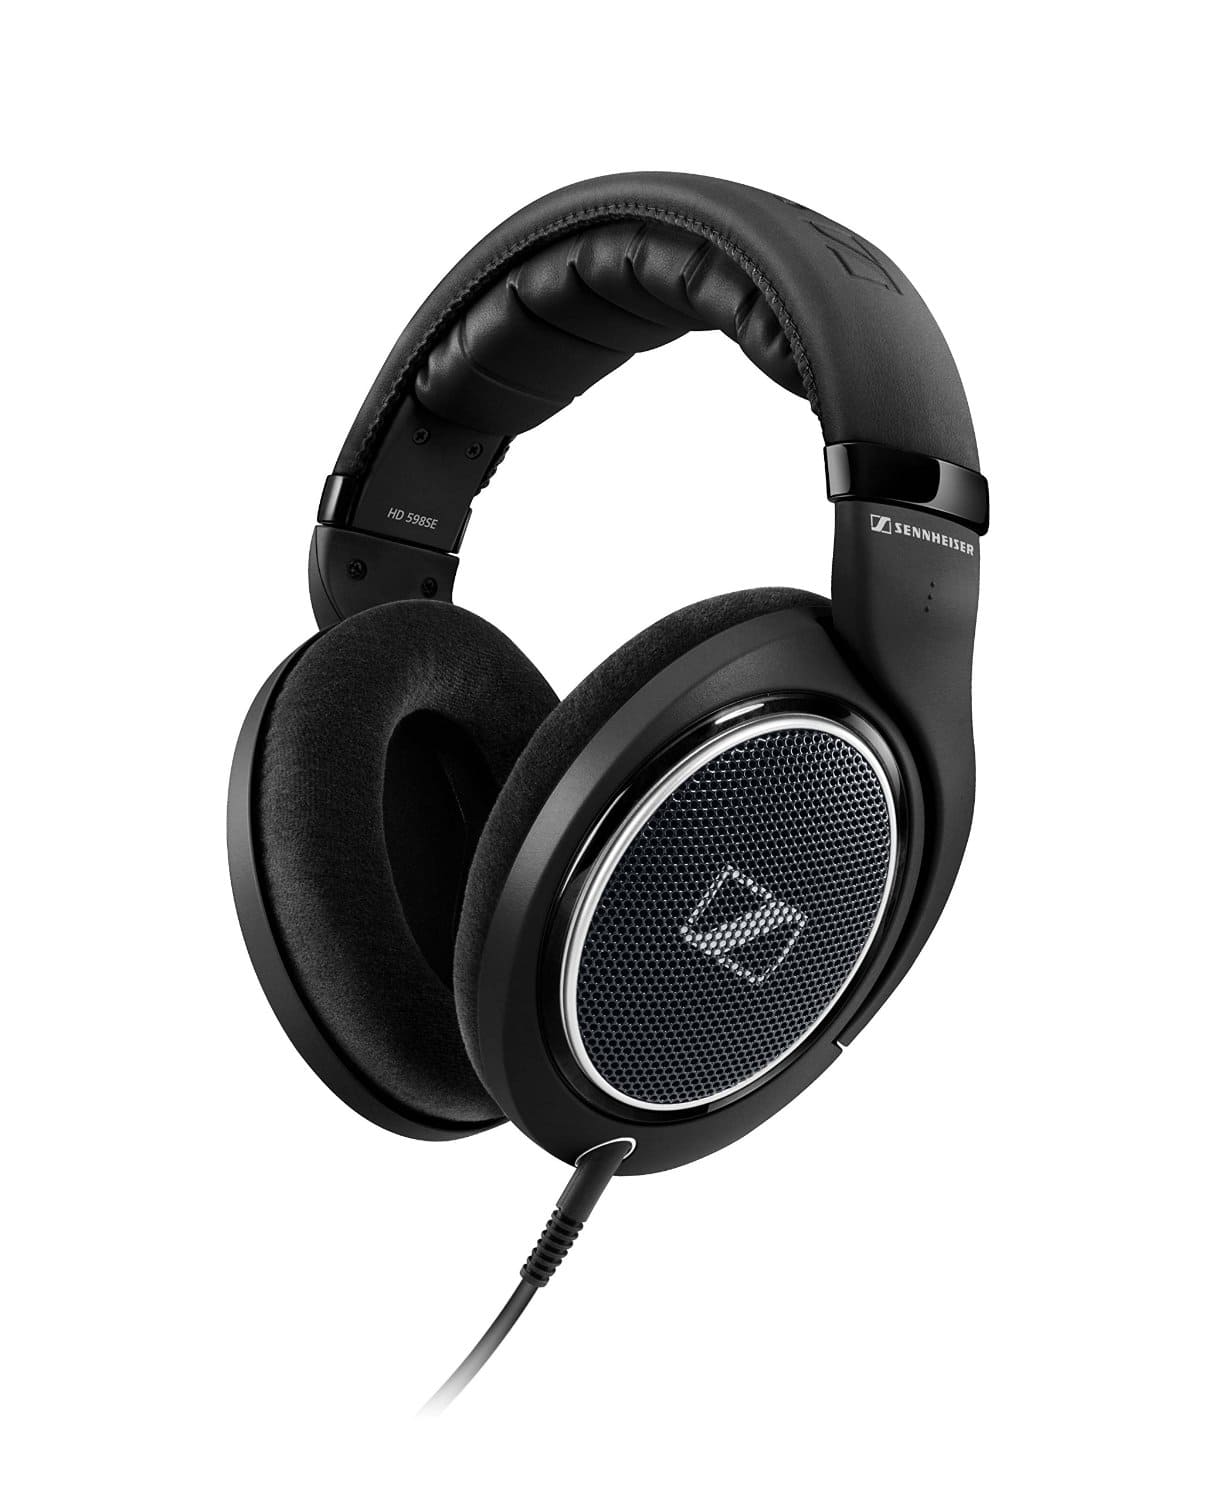 Sennheiser HD 598 - Amazon Special Edition (Black) - $94.99 - Free Shipping (lowest price ever)